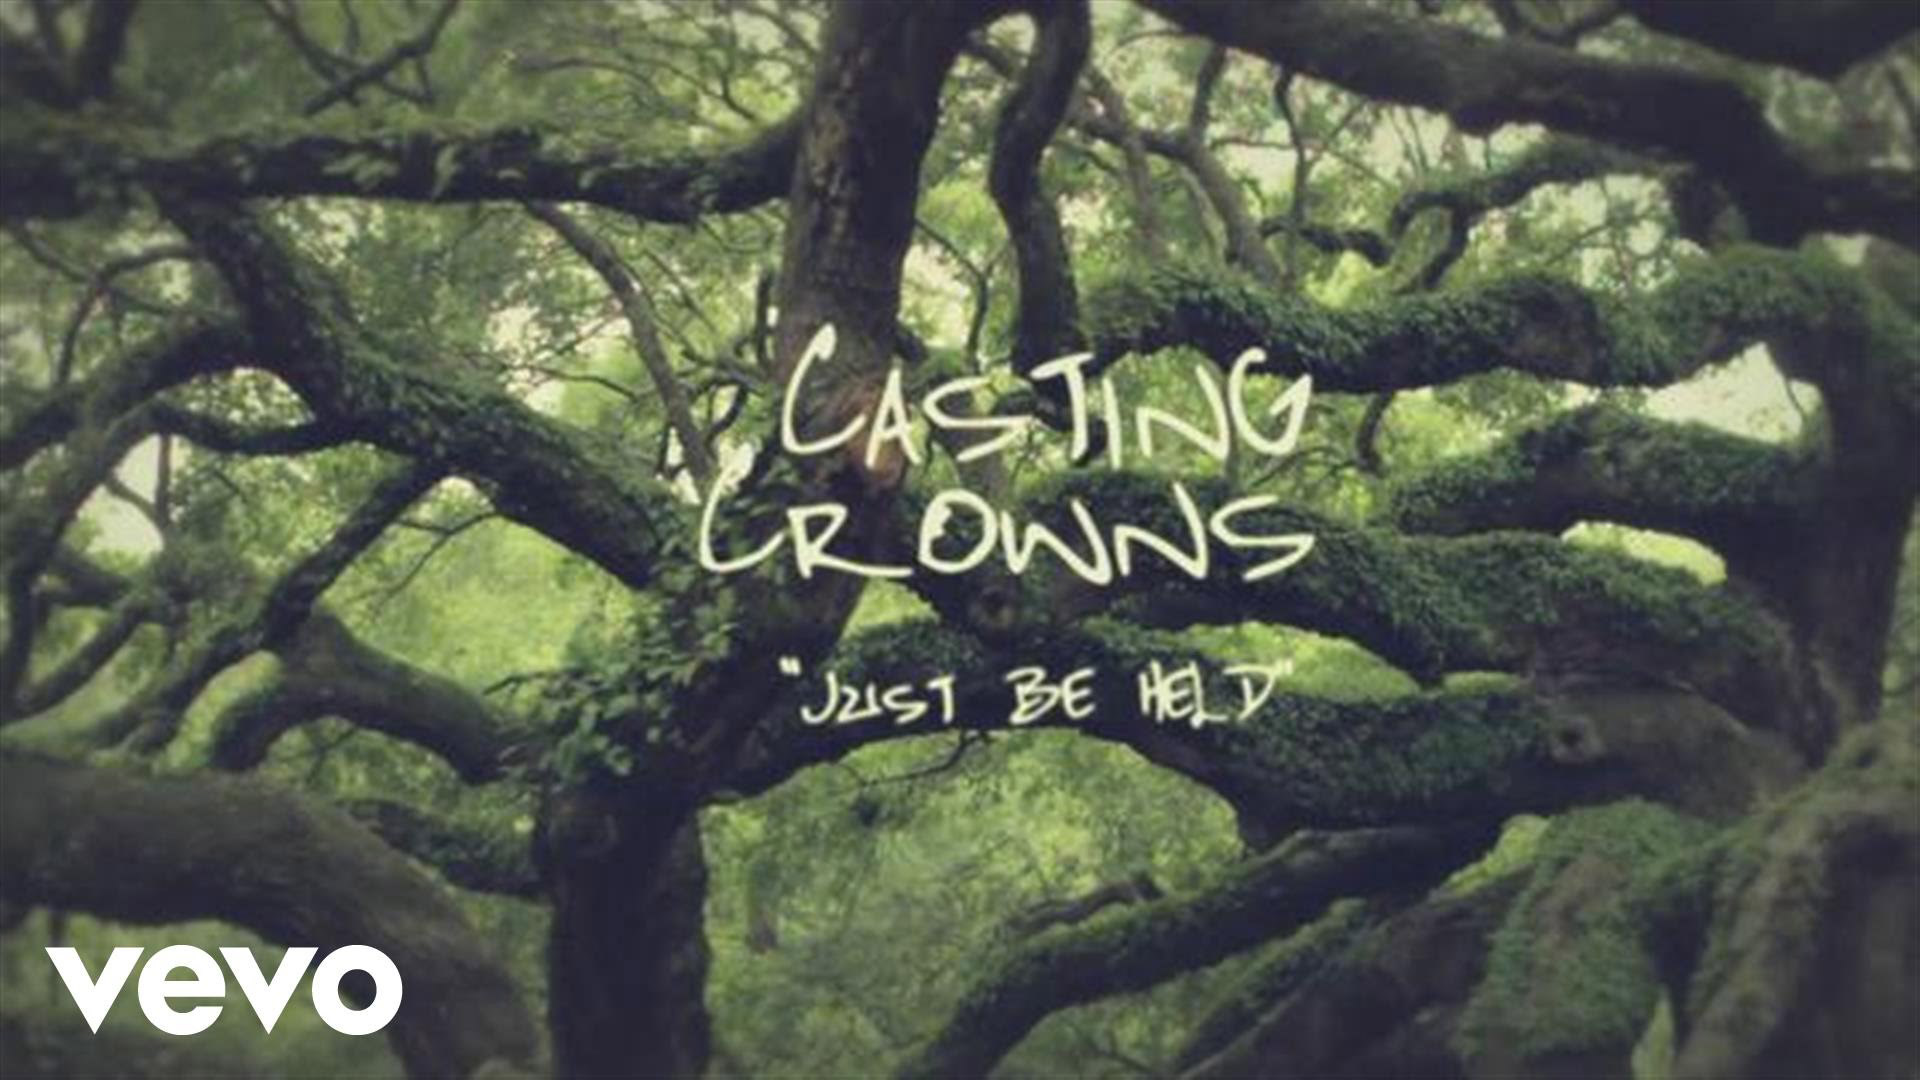 Just Be Held-Casting Crowns  Christian Video Song and Lyrics